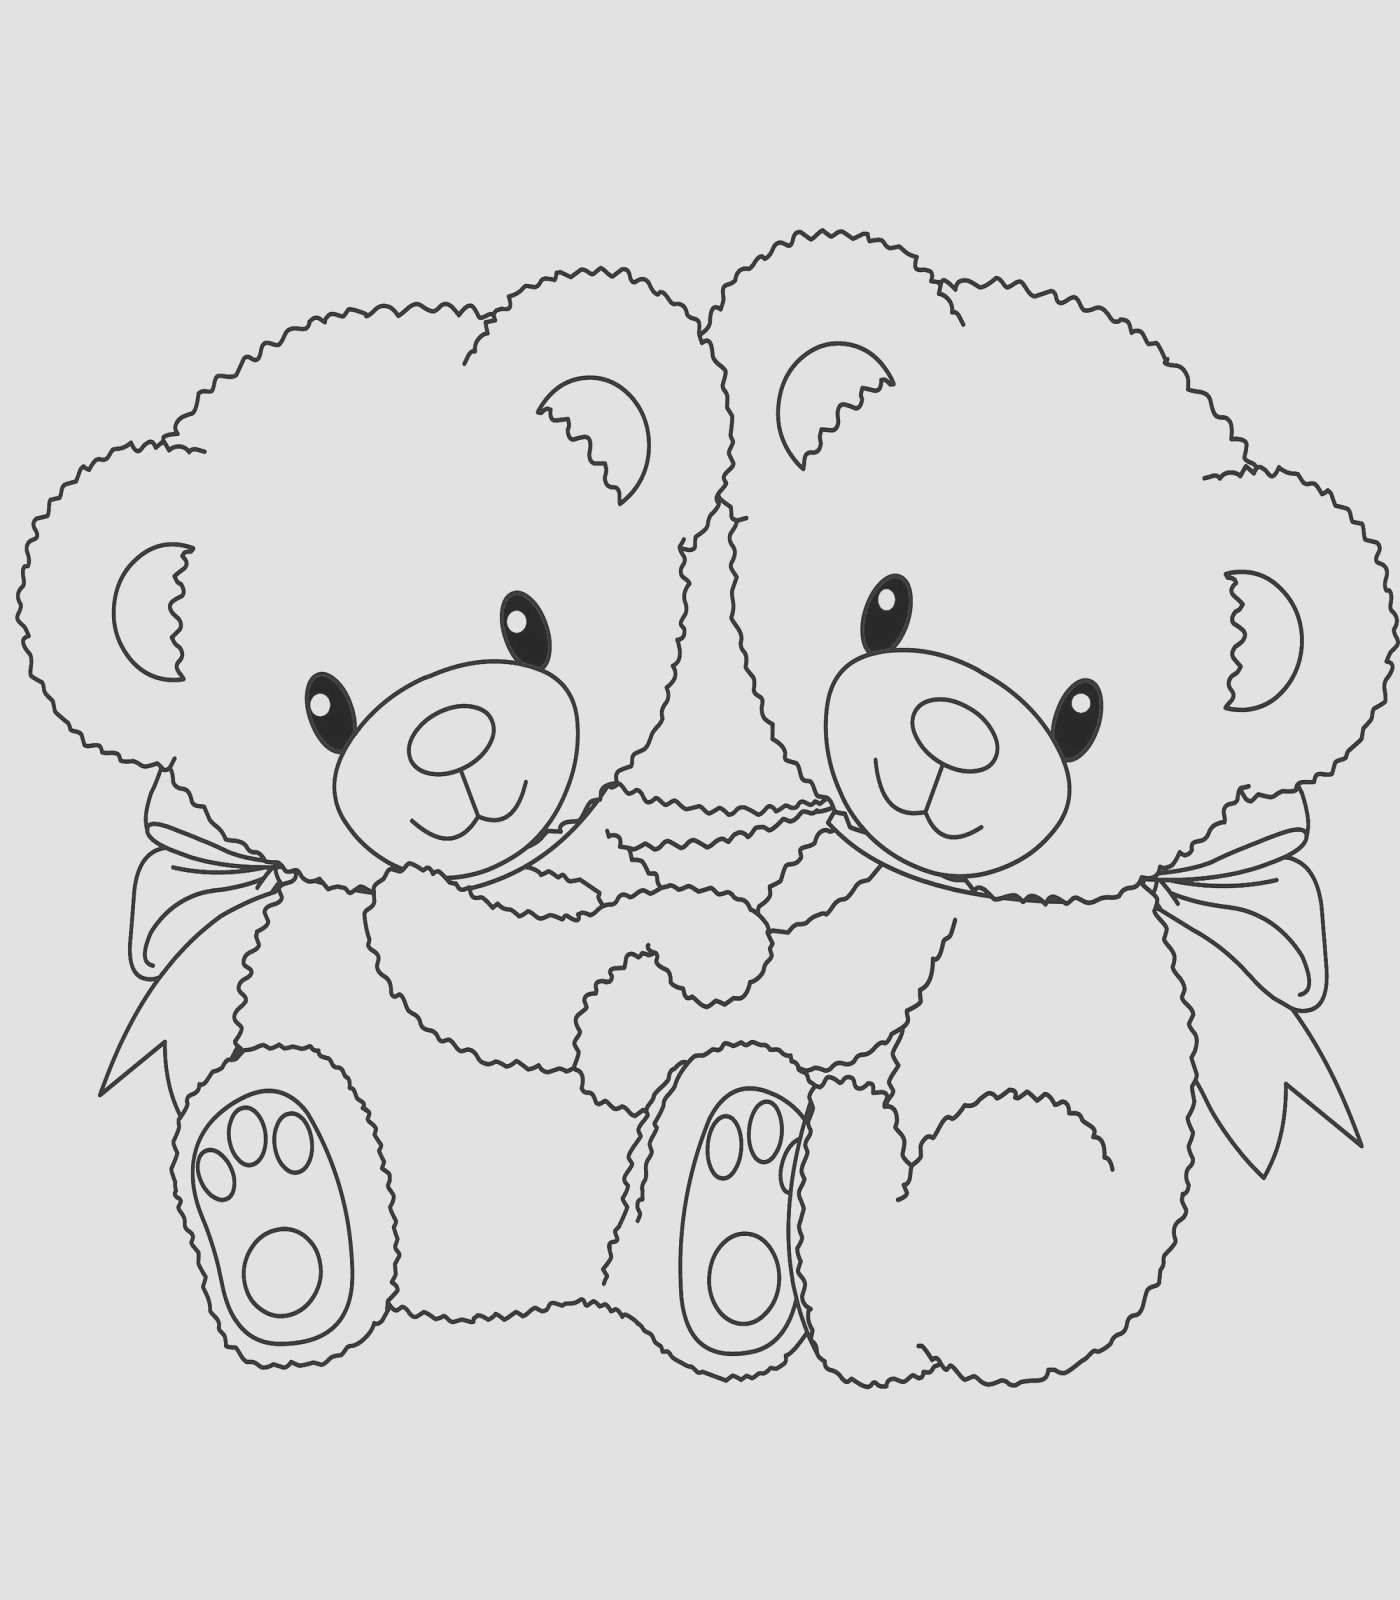 Teddy Bear Coloring Pages New Teddy Bear Coloring Pages Teddy Bear Coloring Pages Bear Coloring Pages Polar Bear Coloring Page